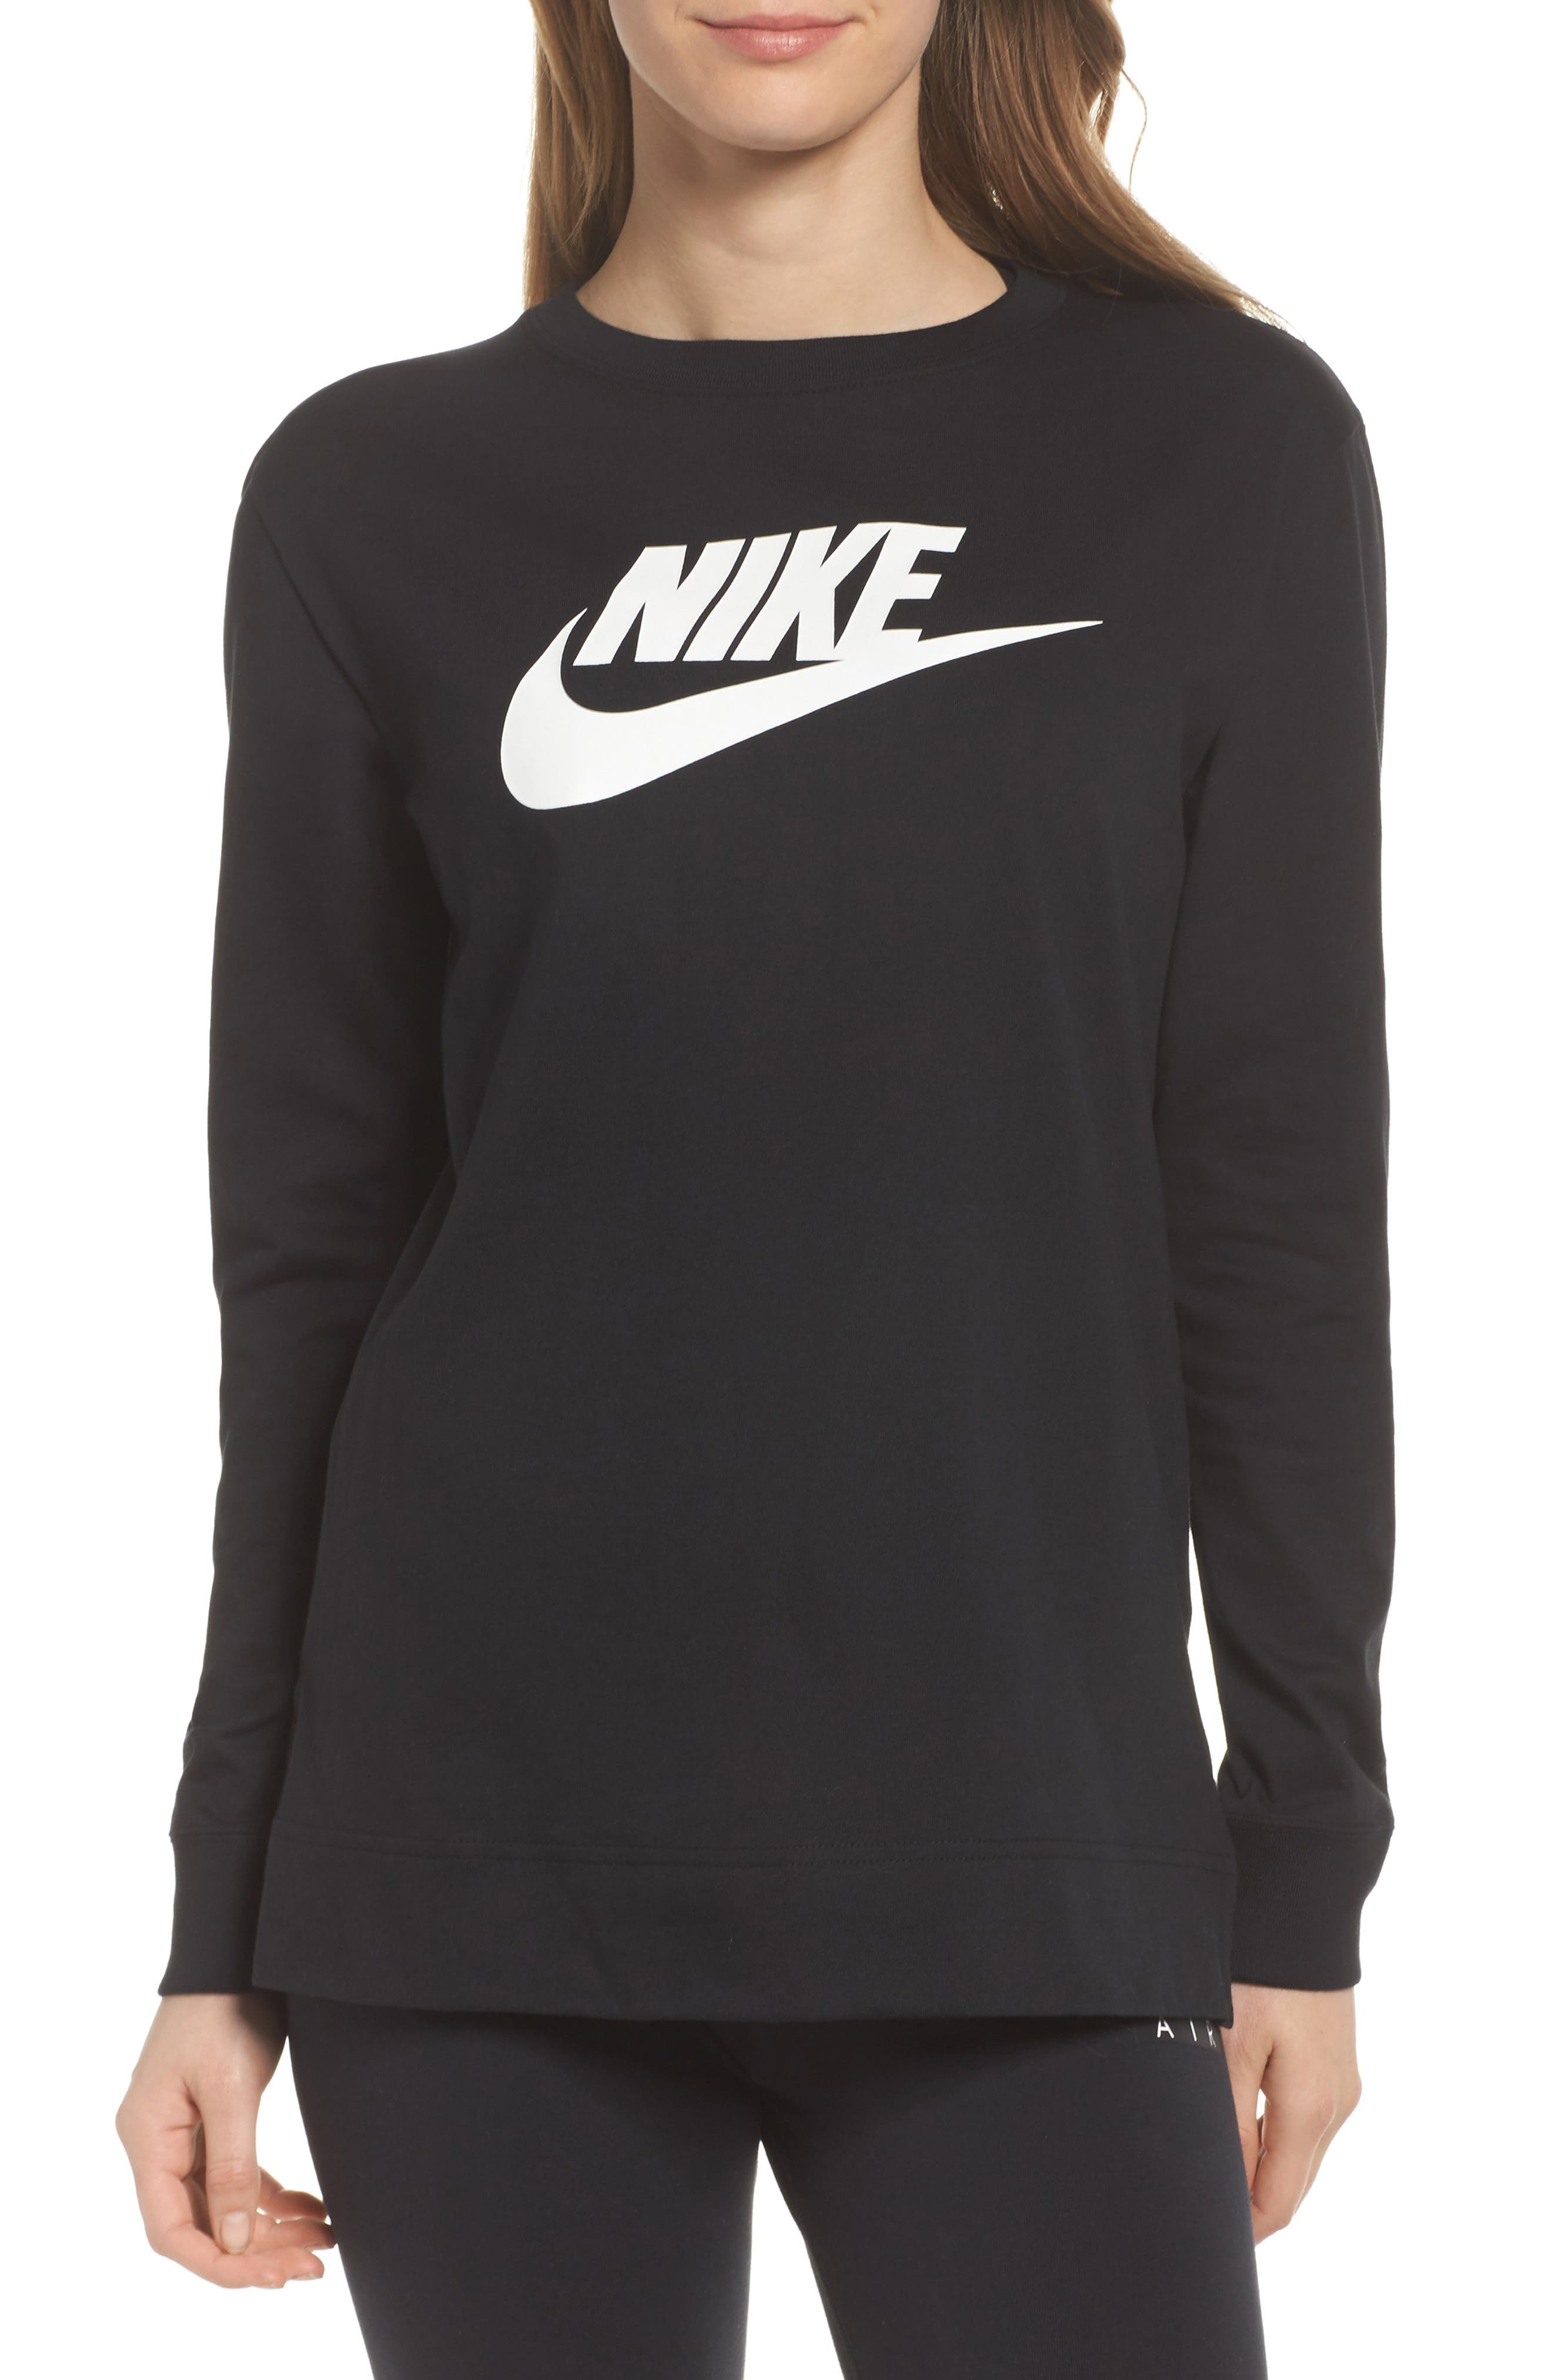 Sportswear HBR Women's Long Sleeve Tee,                         Main,                         color, Black/ White